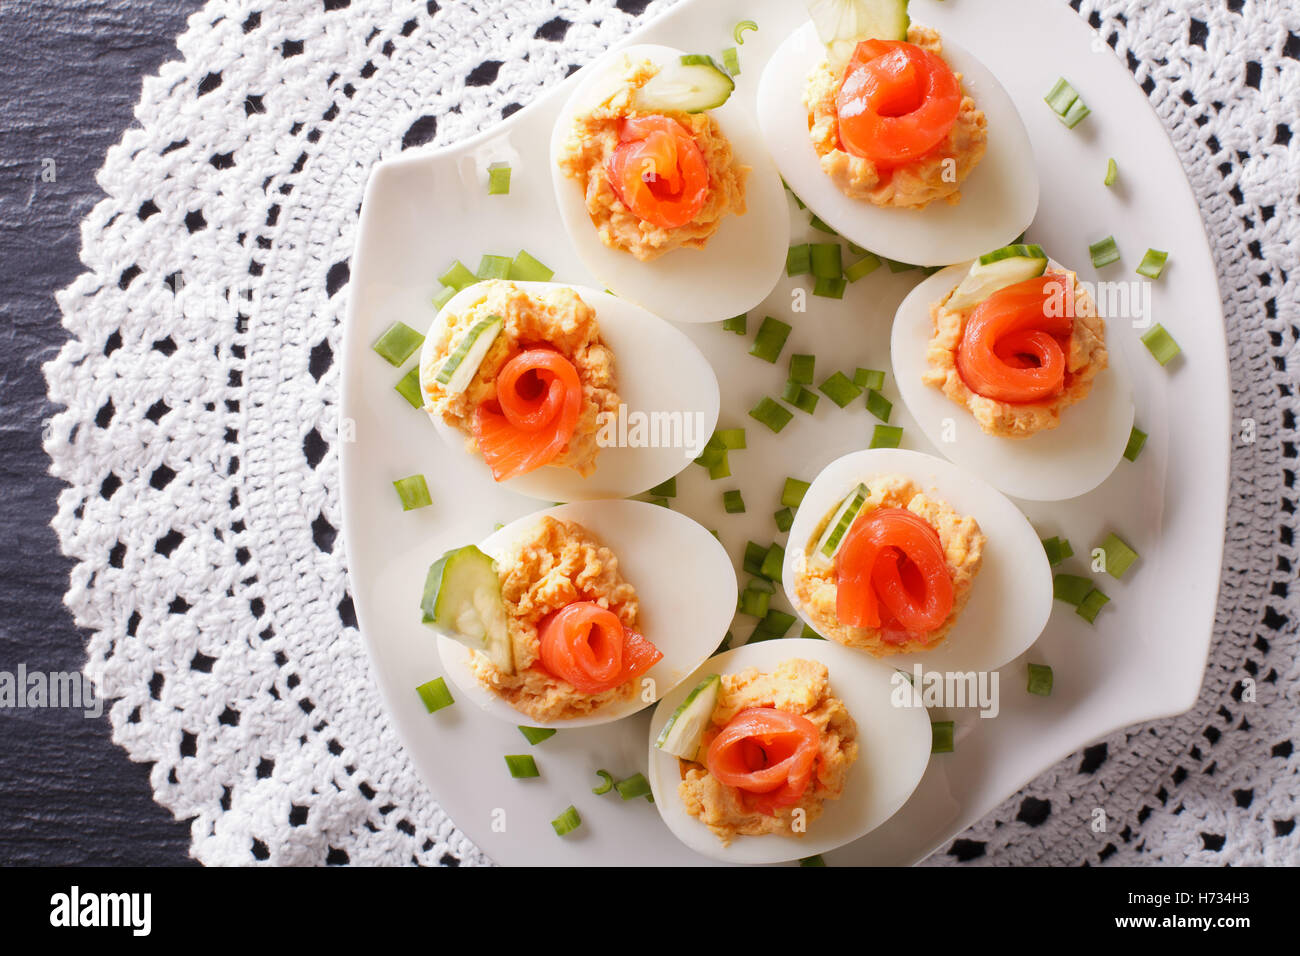 Eggs stuffed with salmon, cheese and cucumber closeup on a table. Horizontal view from above - Stock Image